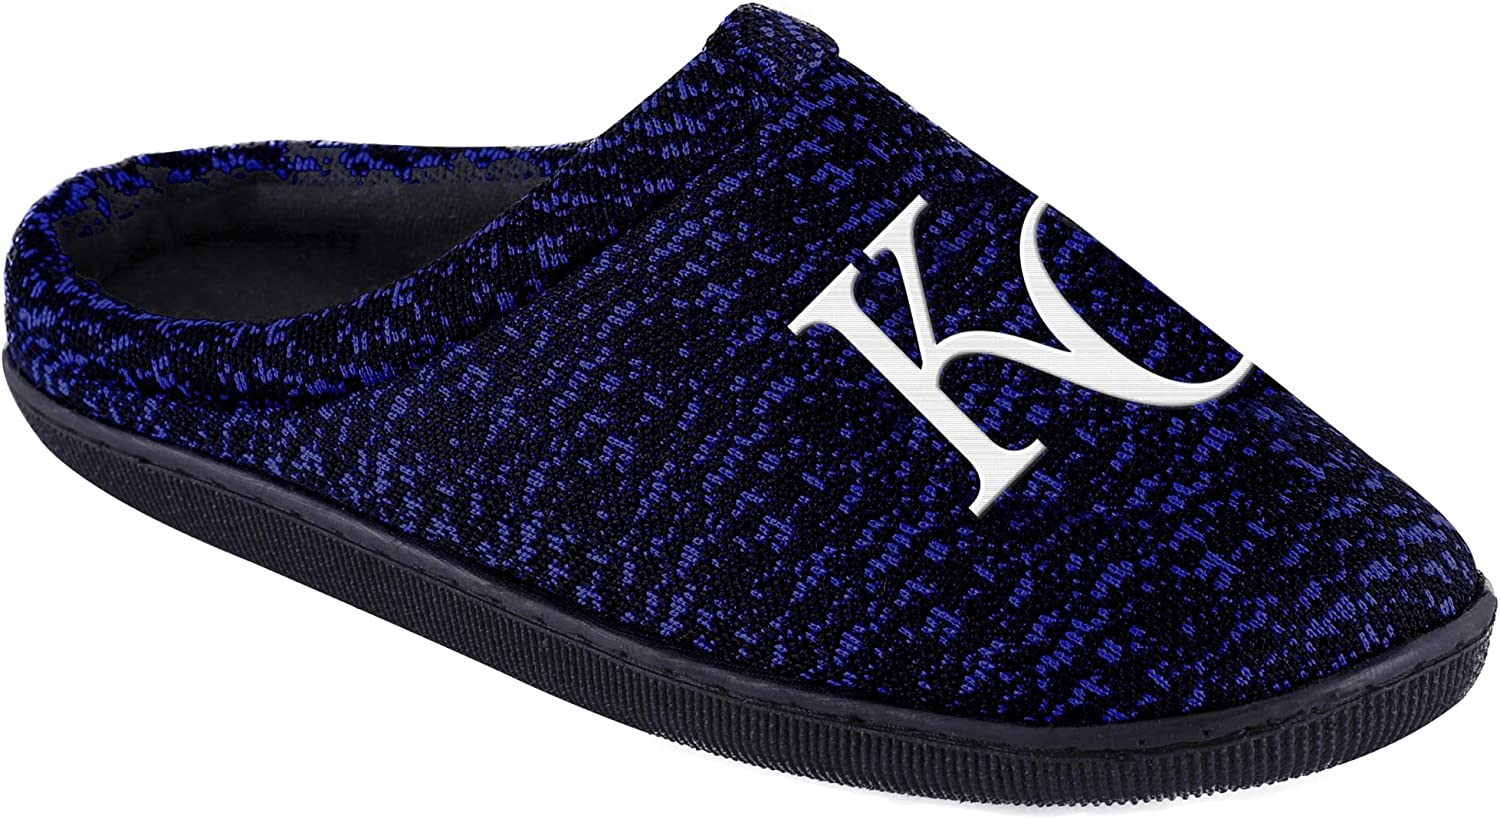 FOCO MLB Unisex Poly Knit Cup Sole